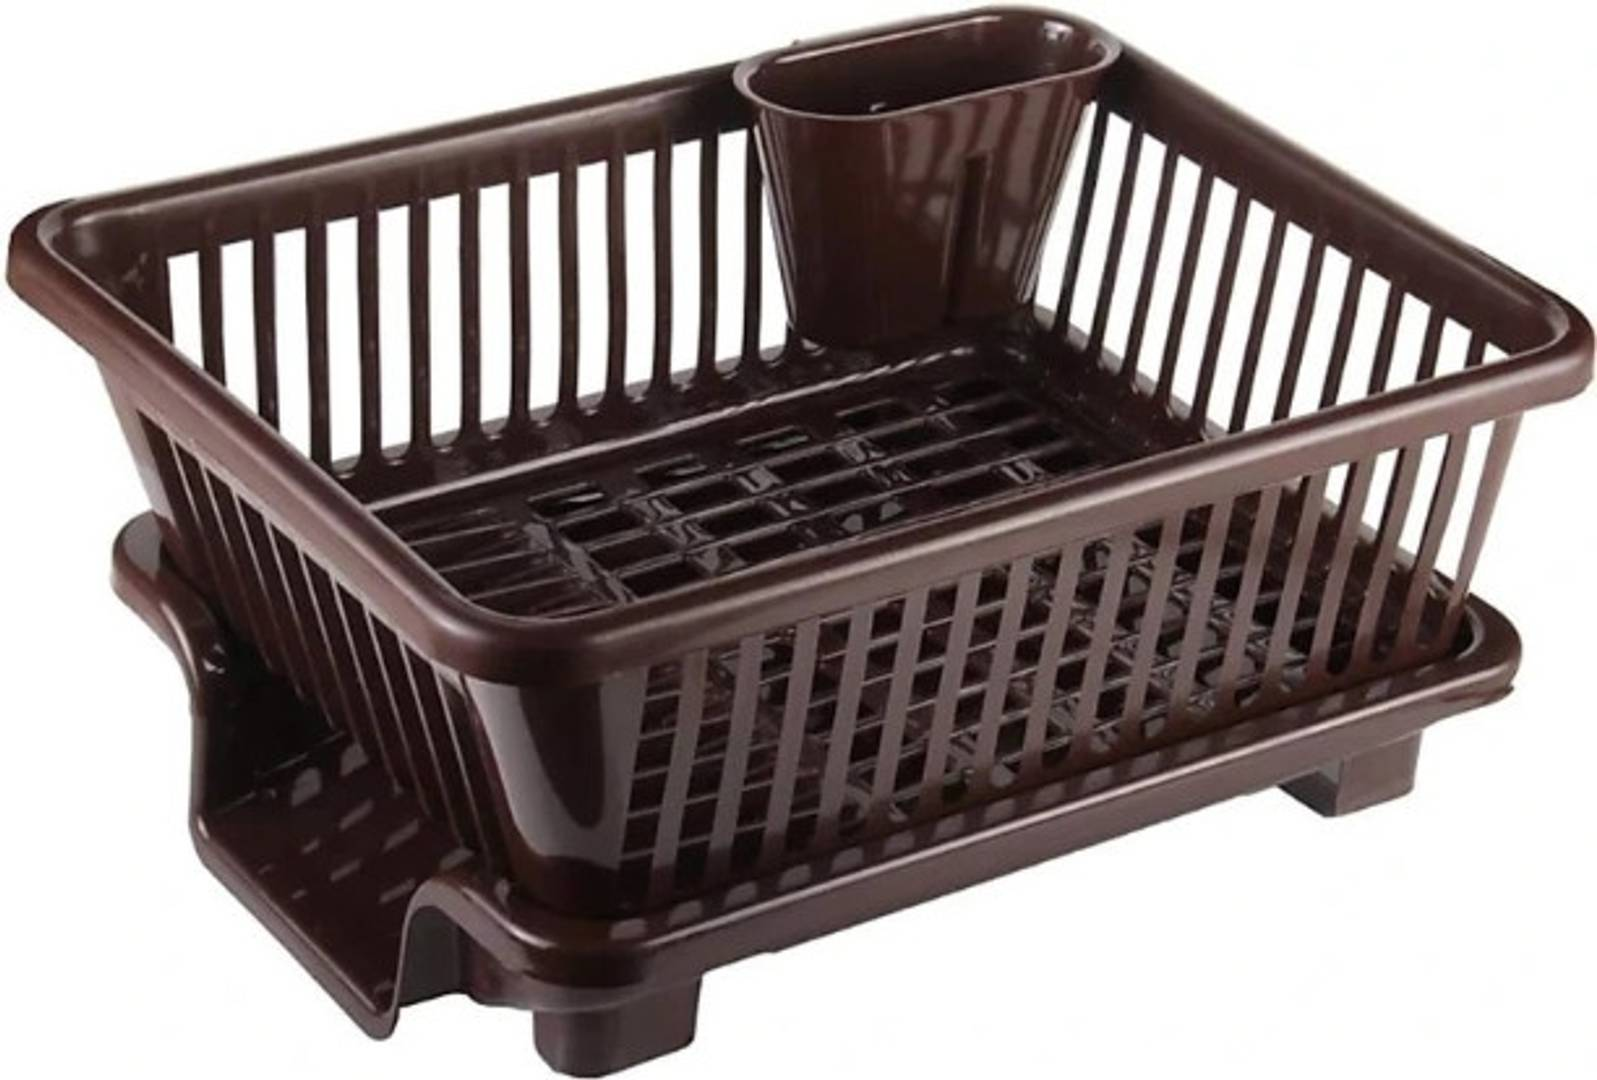 3 in 1 Large Durable Plastic Kitchen Sink Dish Rack Drainer Drying Rack Washing Basket with Tray for Kitchen, Dish Rack Organizers, Utensils Tools Cutlery(multicolor)